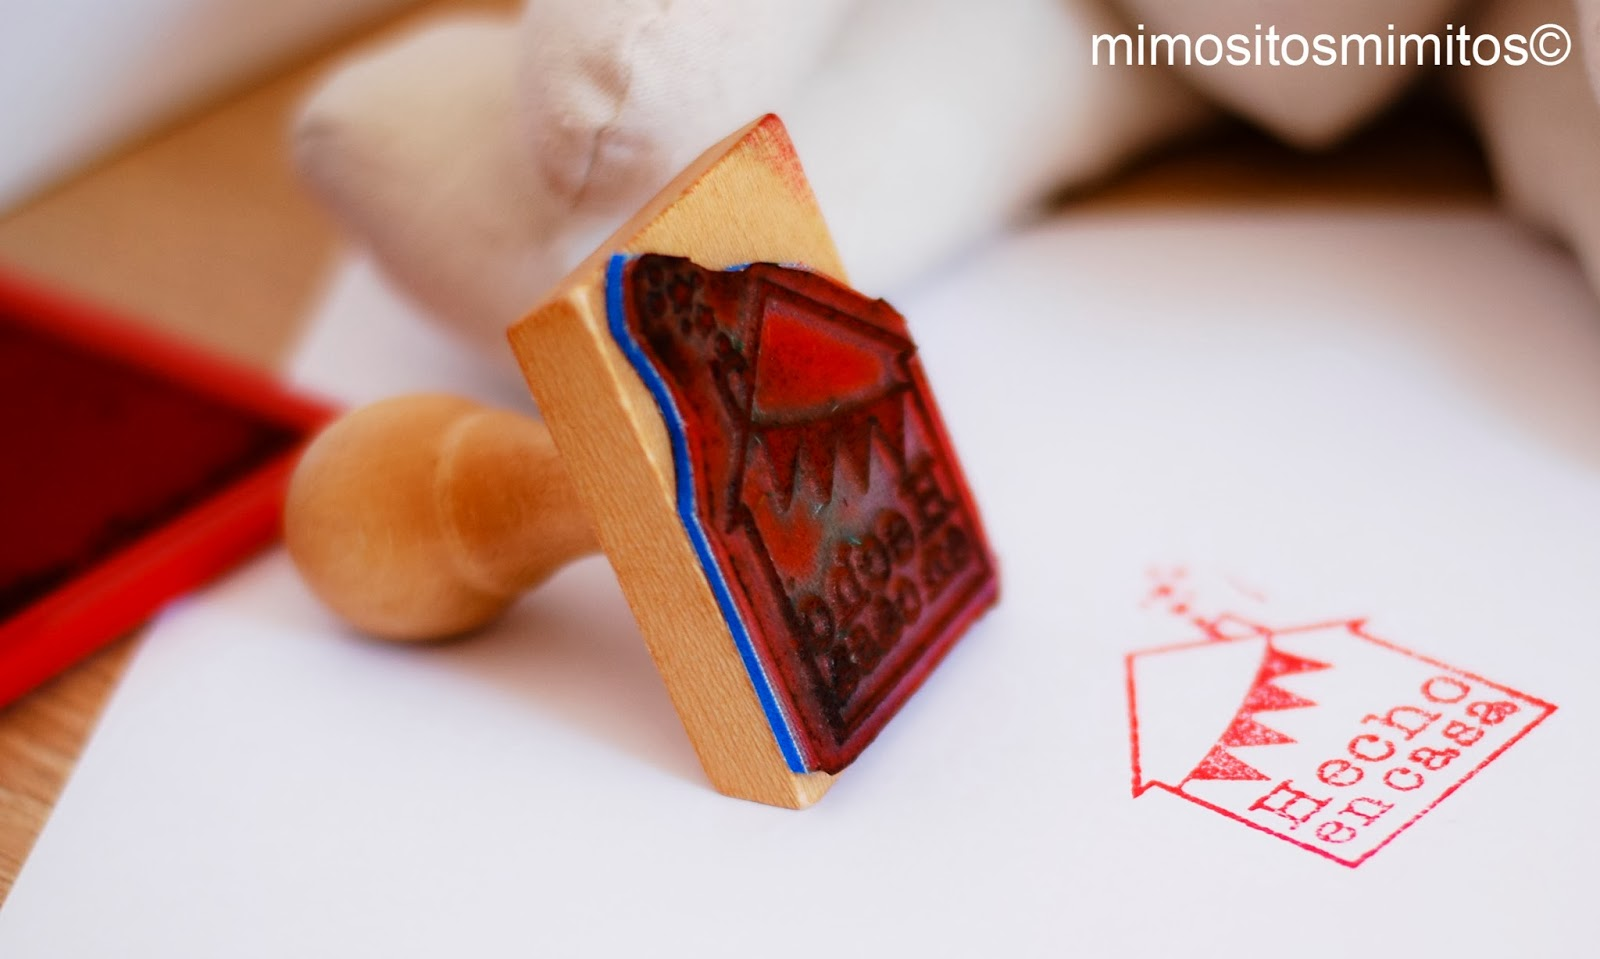 sello vitamina d sorteo craft stamp promo superyuppies miniclub